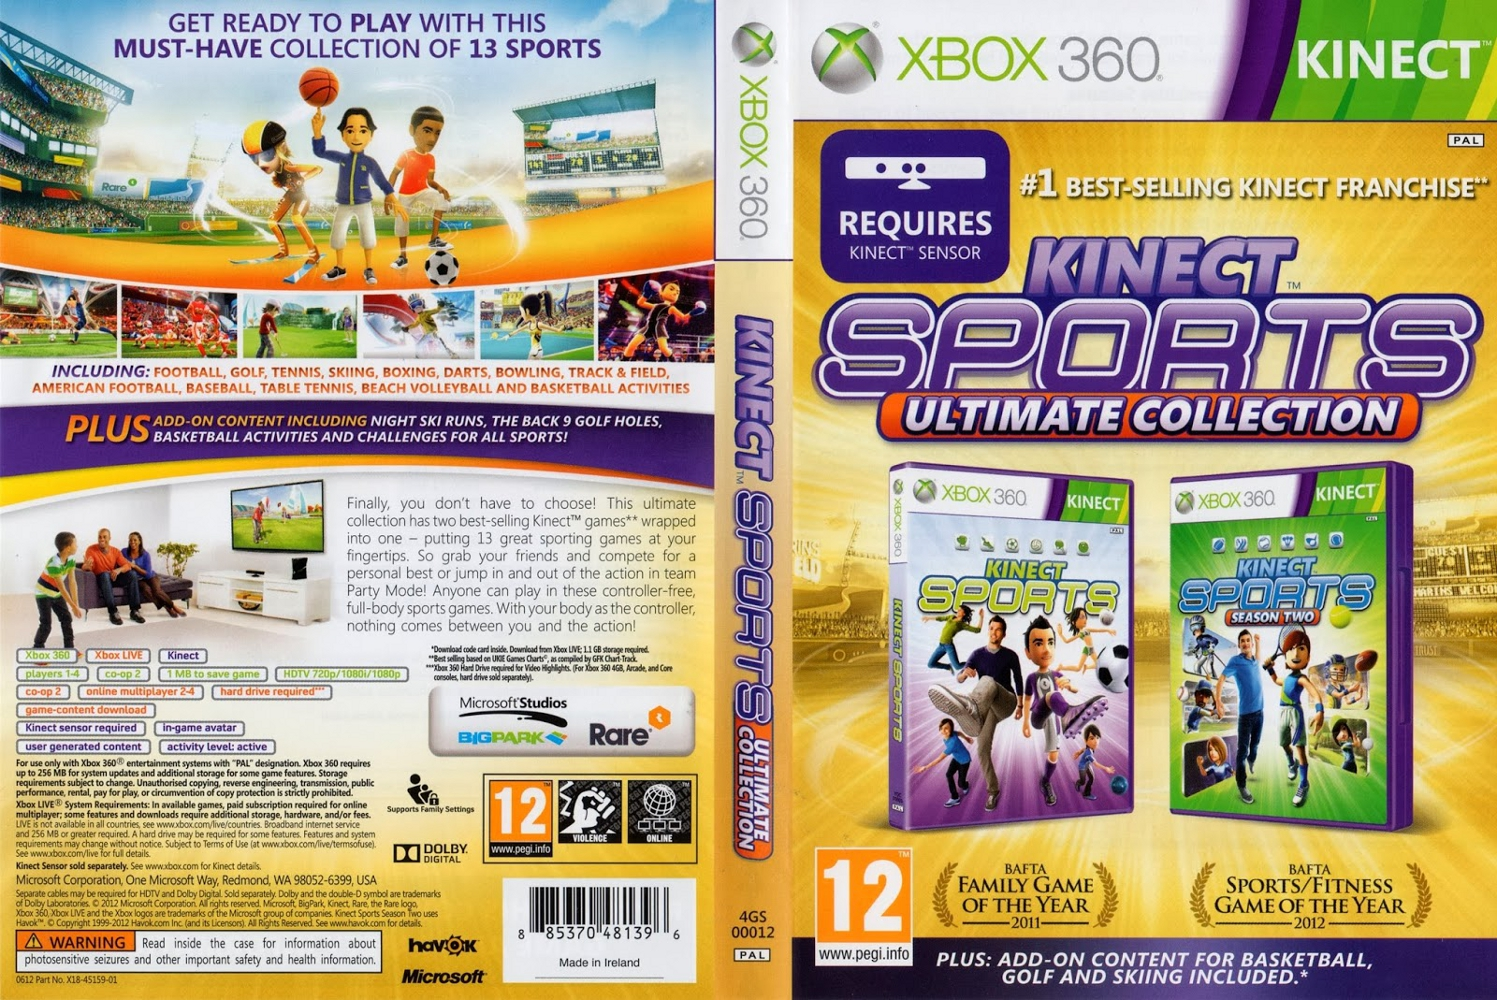 RGH360LTU: XBOX 360/KINECT KINECT SPORTS ULTIMATE COLLECTION